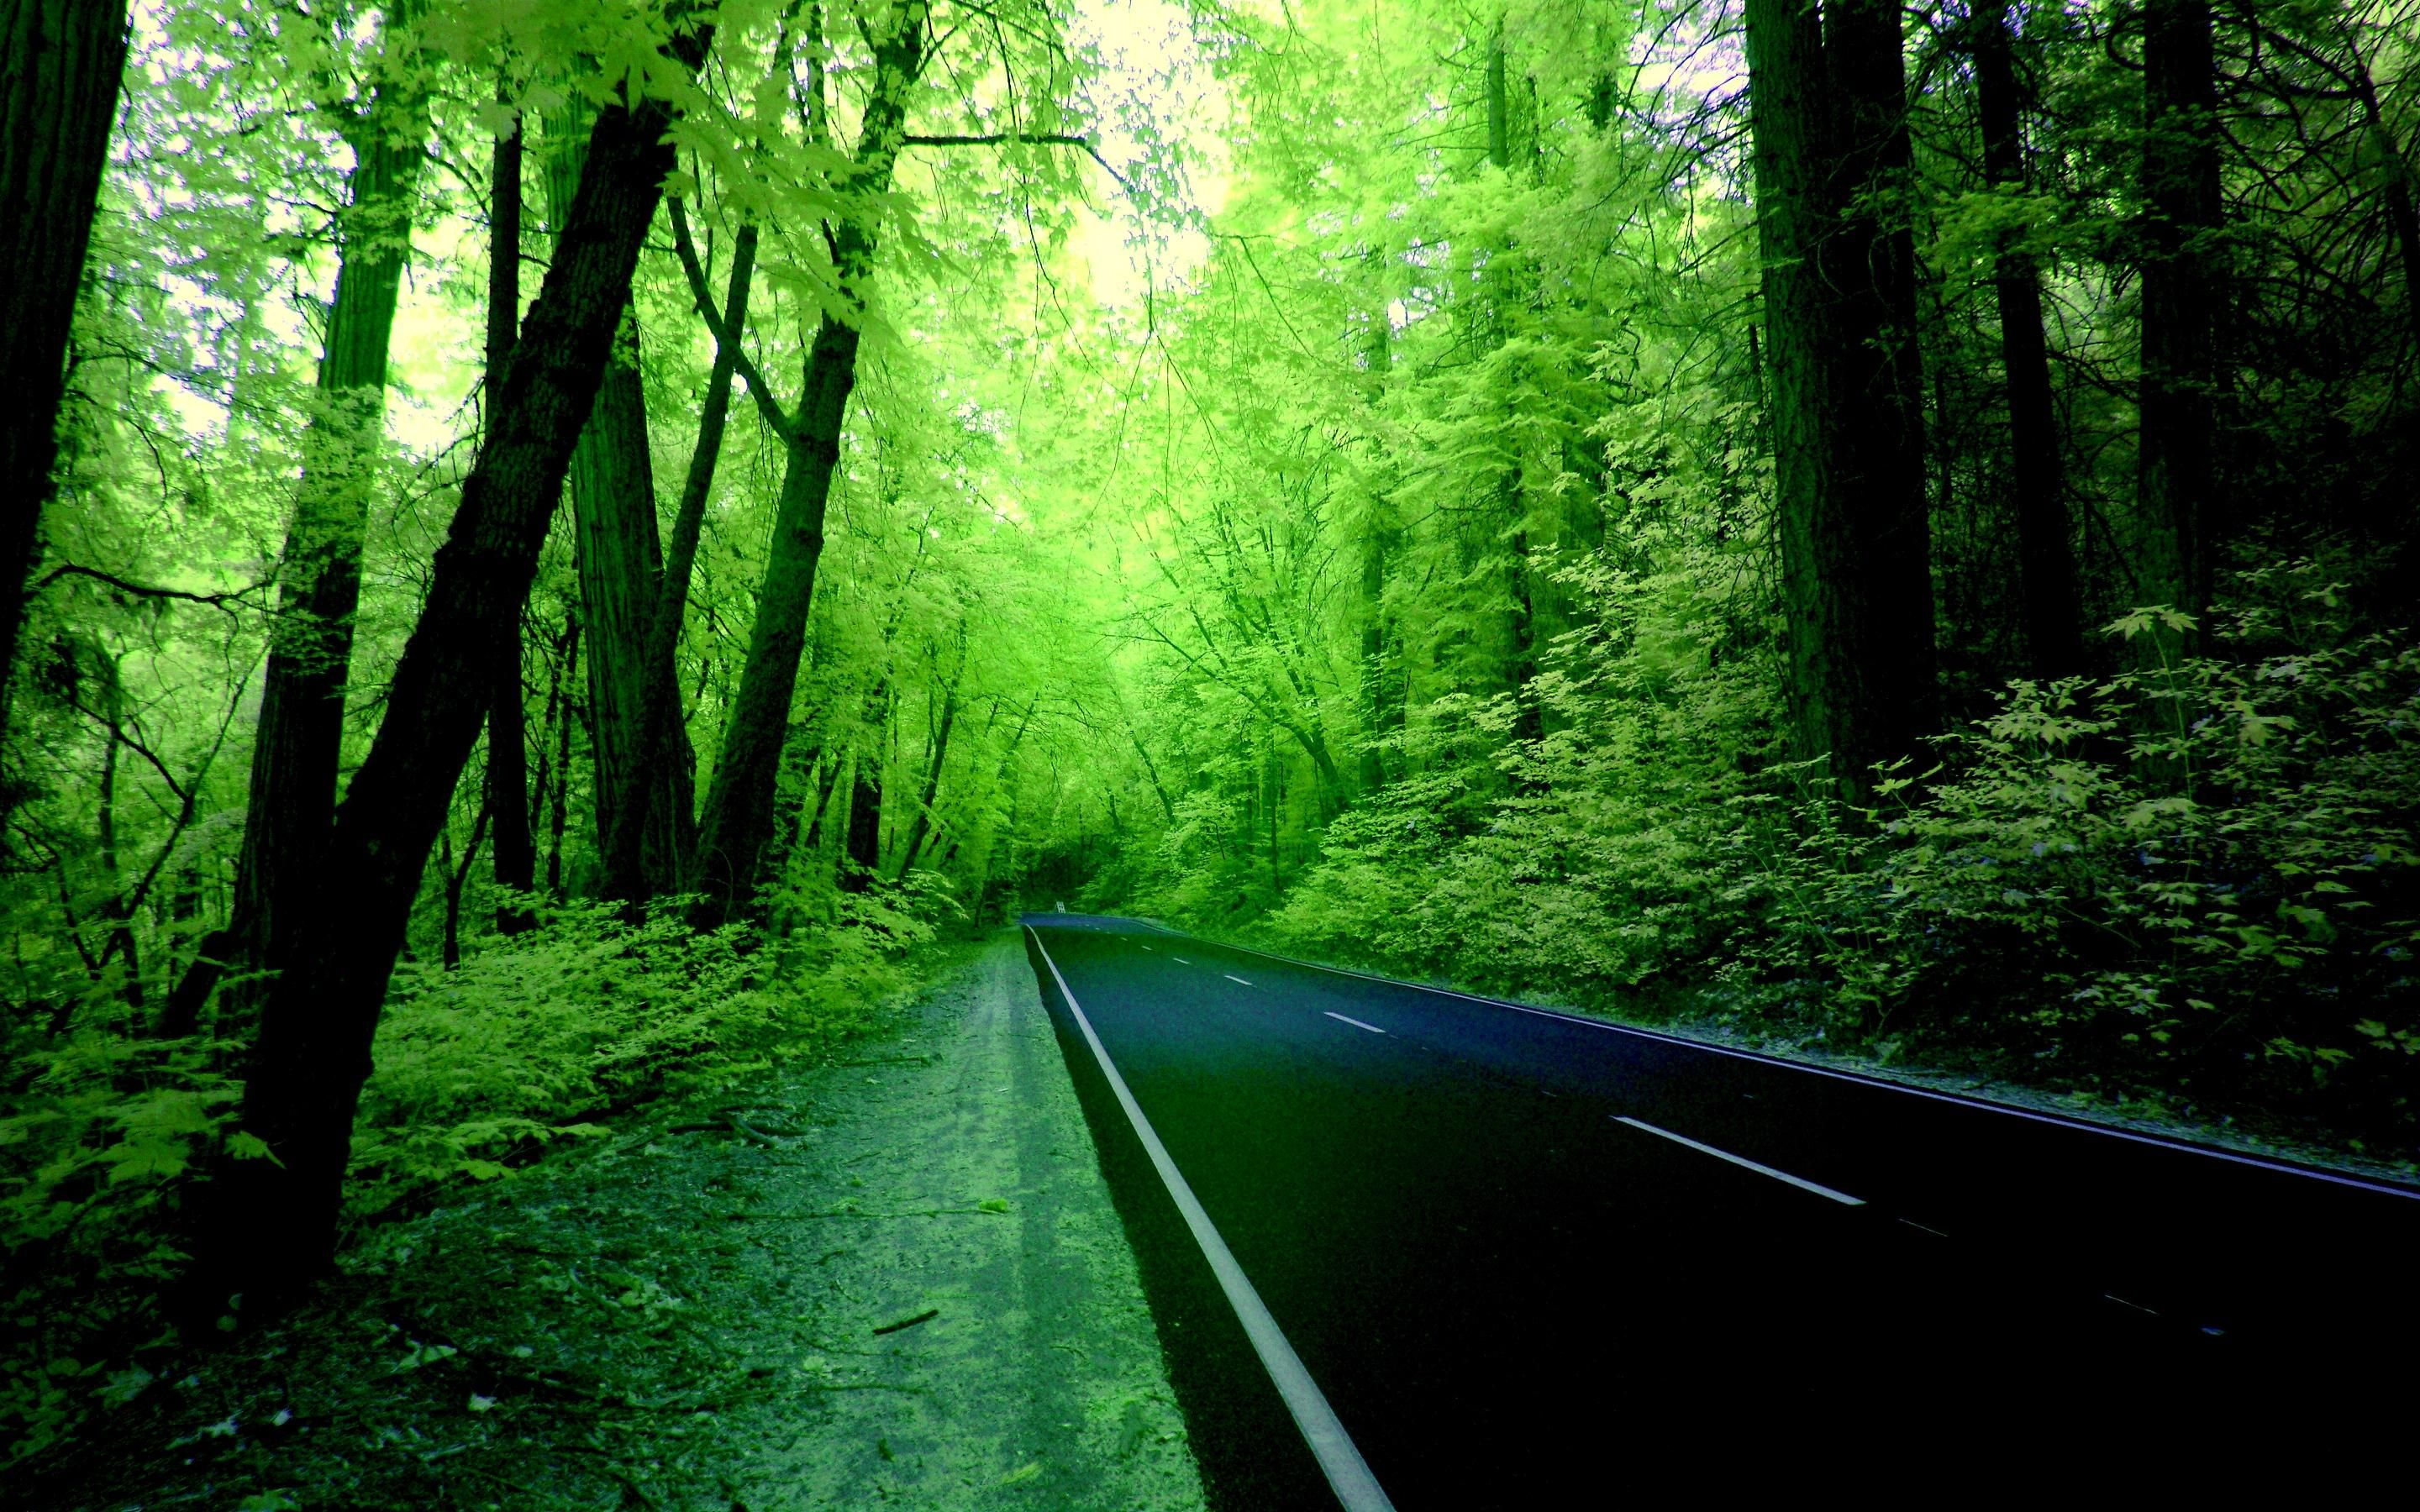 green forest wallpaper hd background 9 hd wallpapers | art